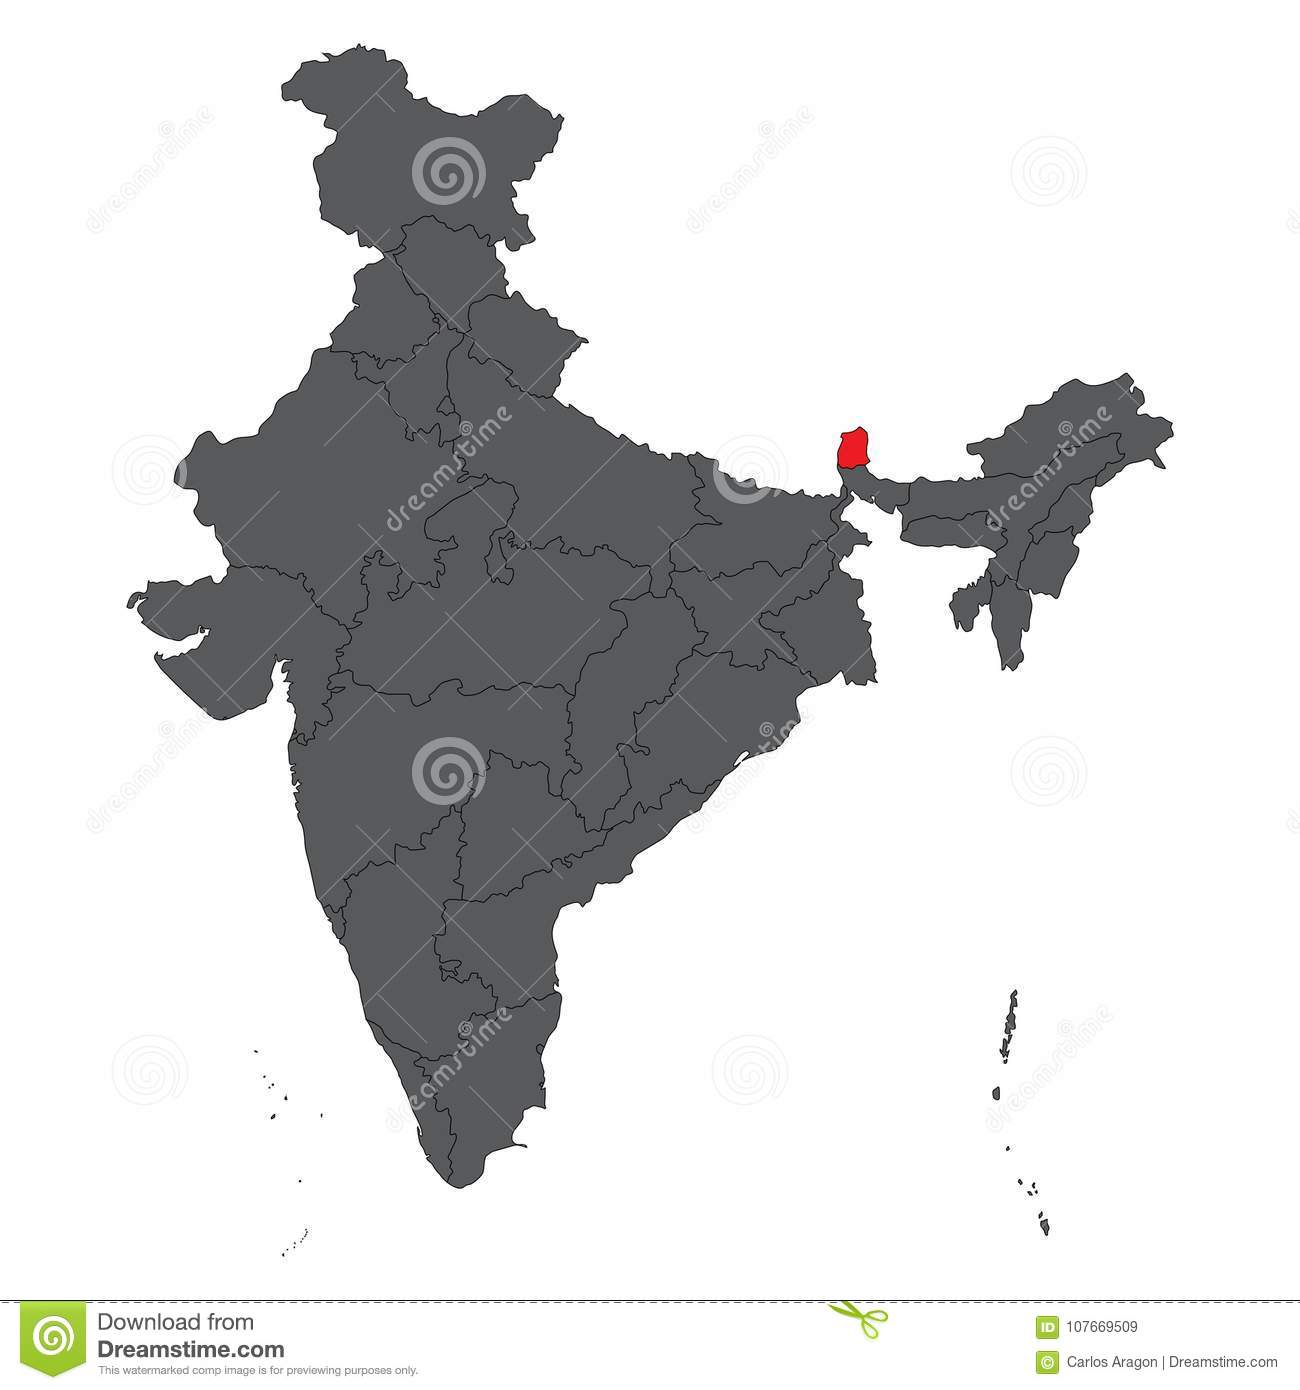 Carte Inde Sikkim.Sikkim Red On Gray India Map Vector Stock Vector Illustration Of